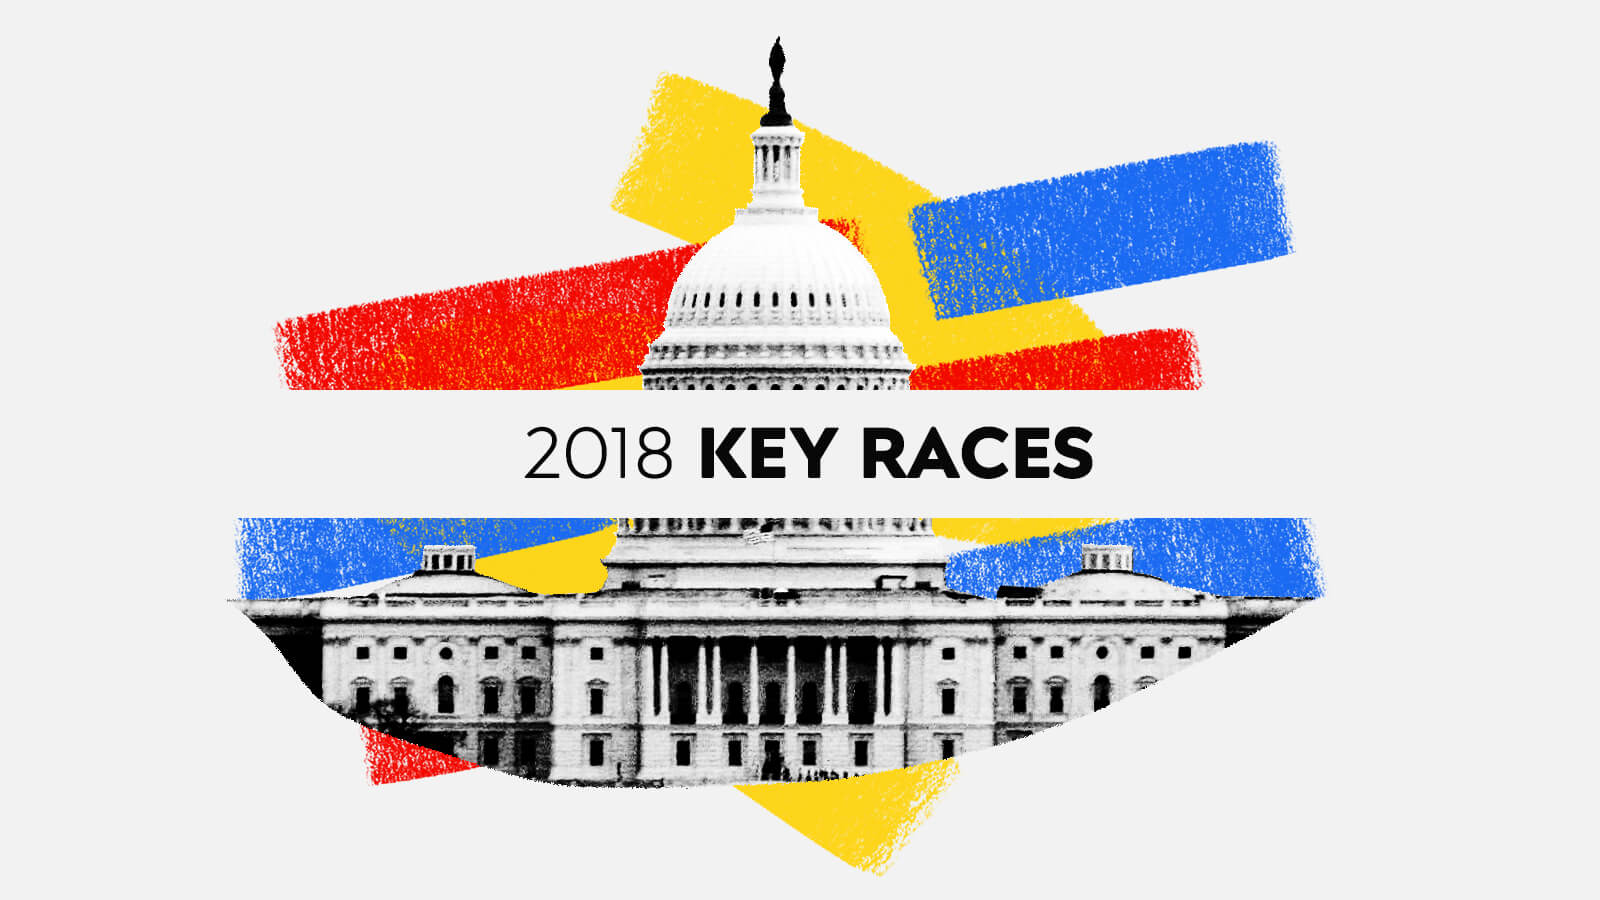 Key Races 2018 link